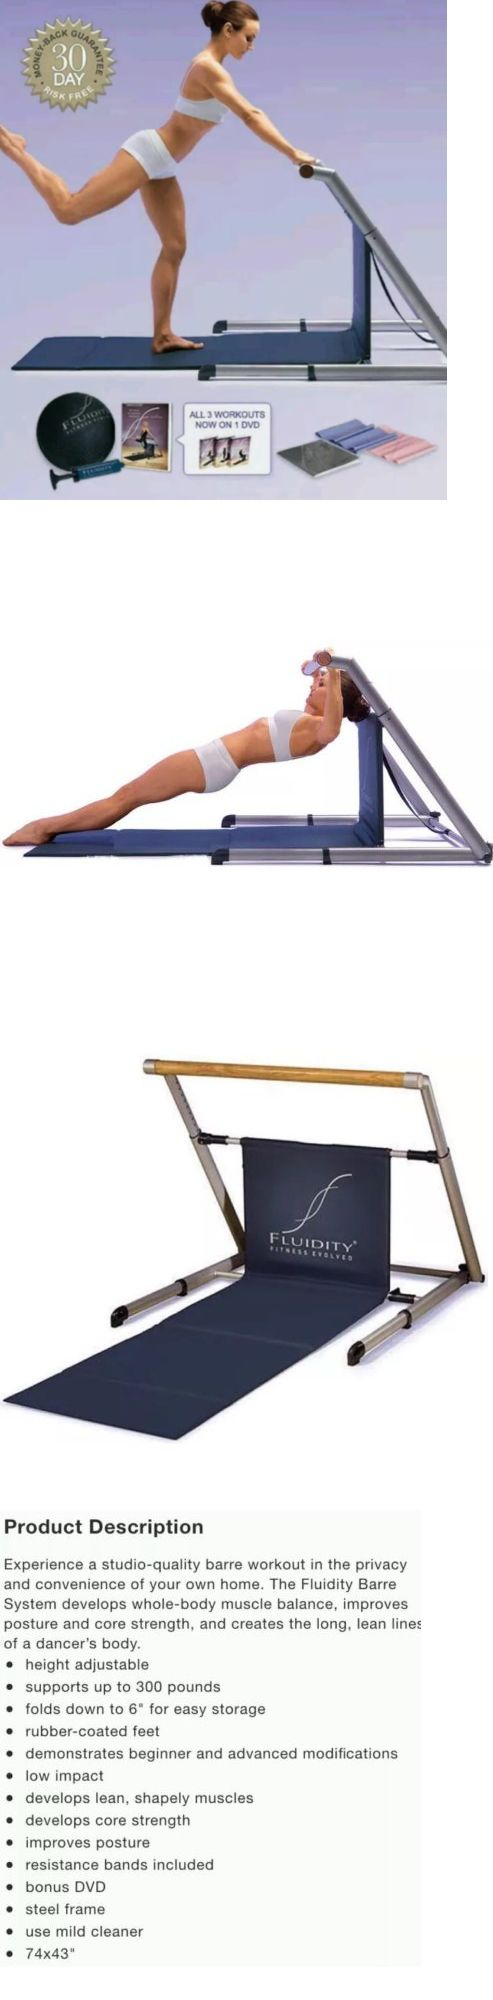 Ballet Barres 179804: Nib Fluidity Barre System Portable Ballet Bar Fitness Yoga Pilates Workout Dance BUY IT NOW ONLY: $149.99